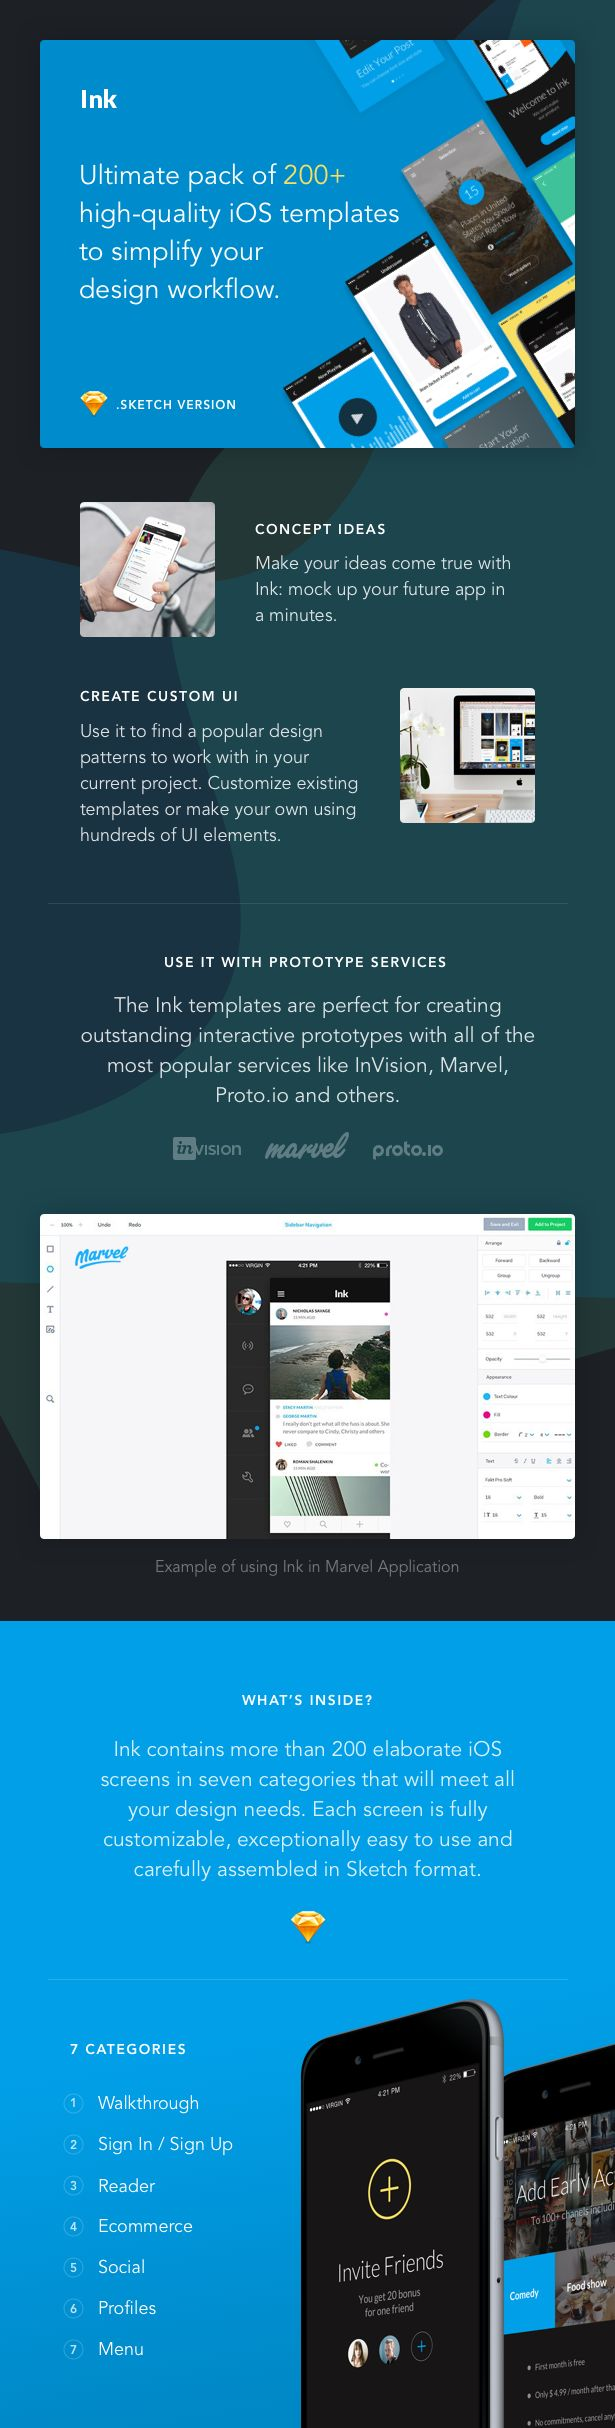 Features   200+ iOS screens in iPhone 6 resolution (750*1334 px) 7 most popular categories Hundreds of 100% customizable UI elements. Retina ready 100% Vector Layers Smart Layer Struc...